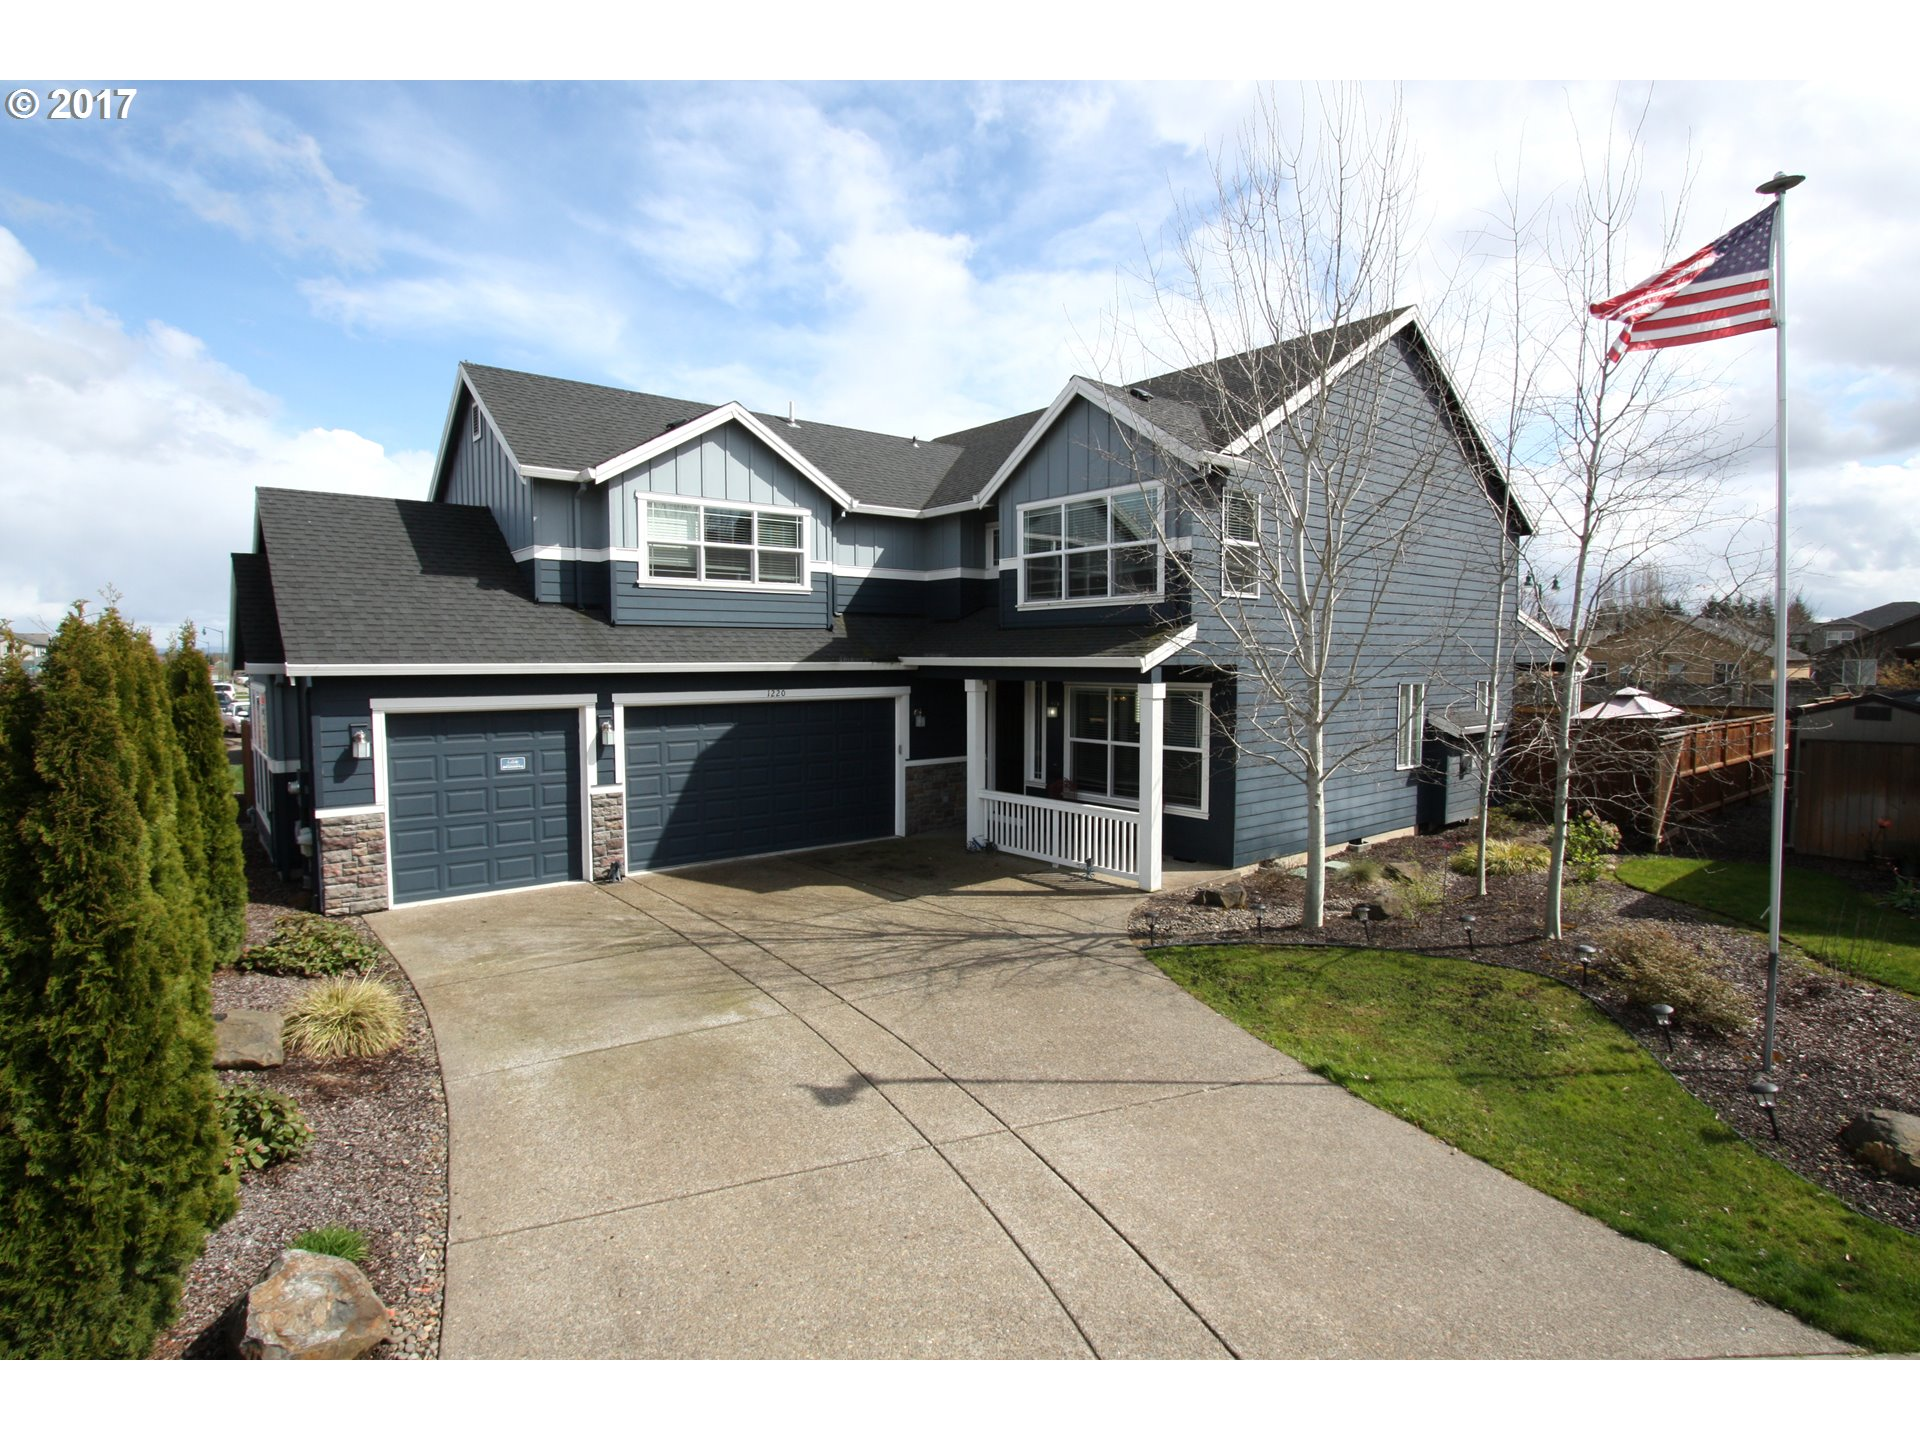 1220 36TH AVE Forest Grove, OR 97116 - MLS #: 17268065